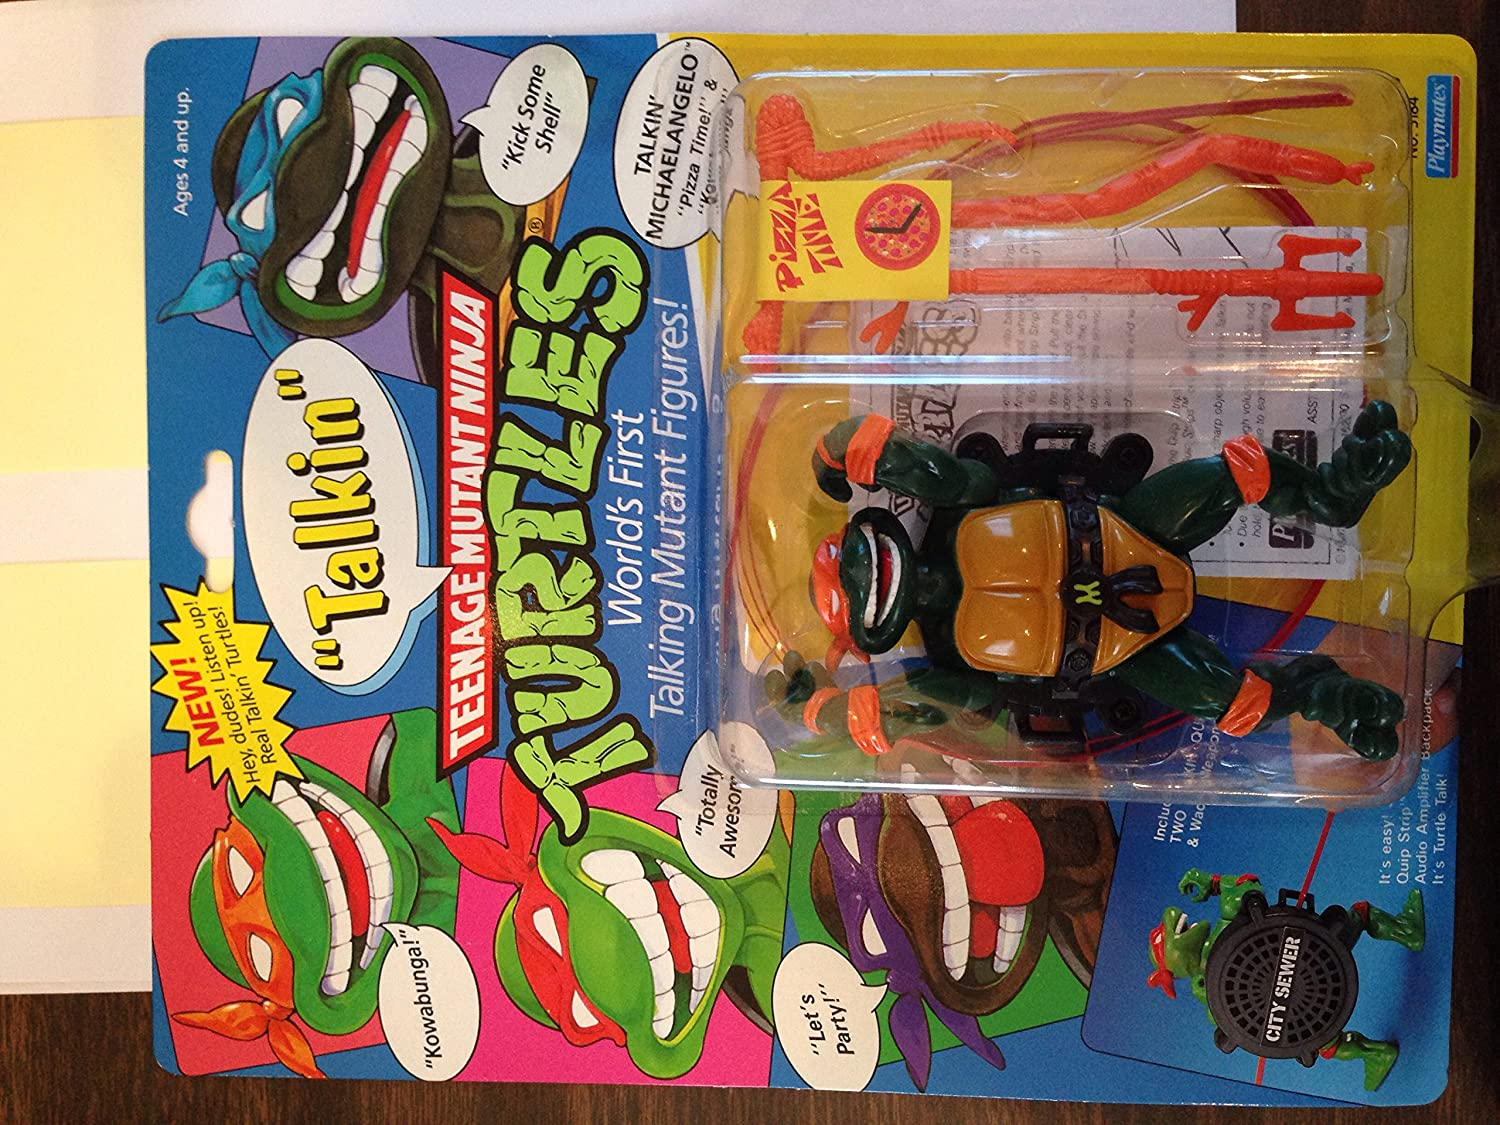 1991Talkin Mike (Michelangelo) Teenage Mutant Ninja Turtles